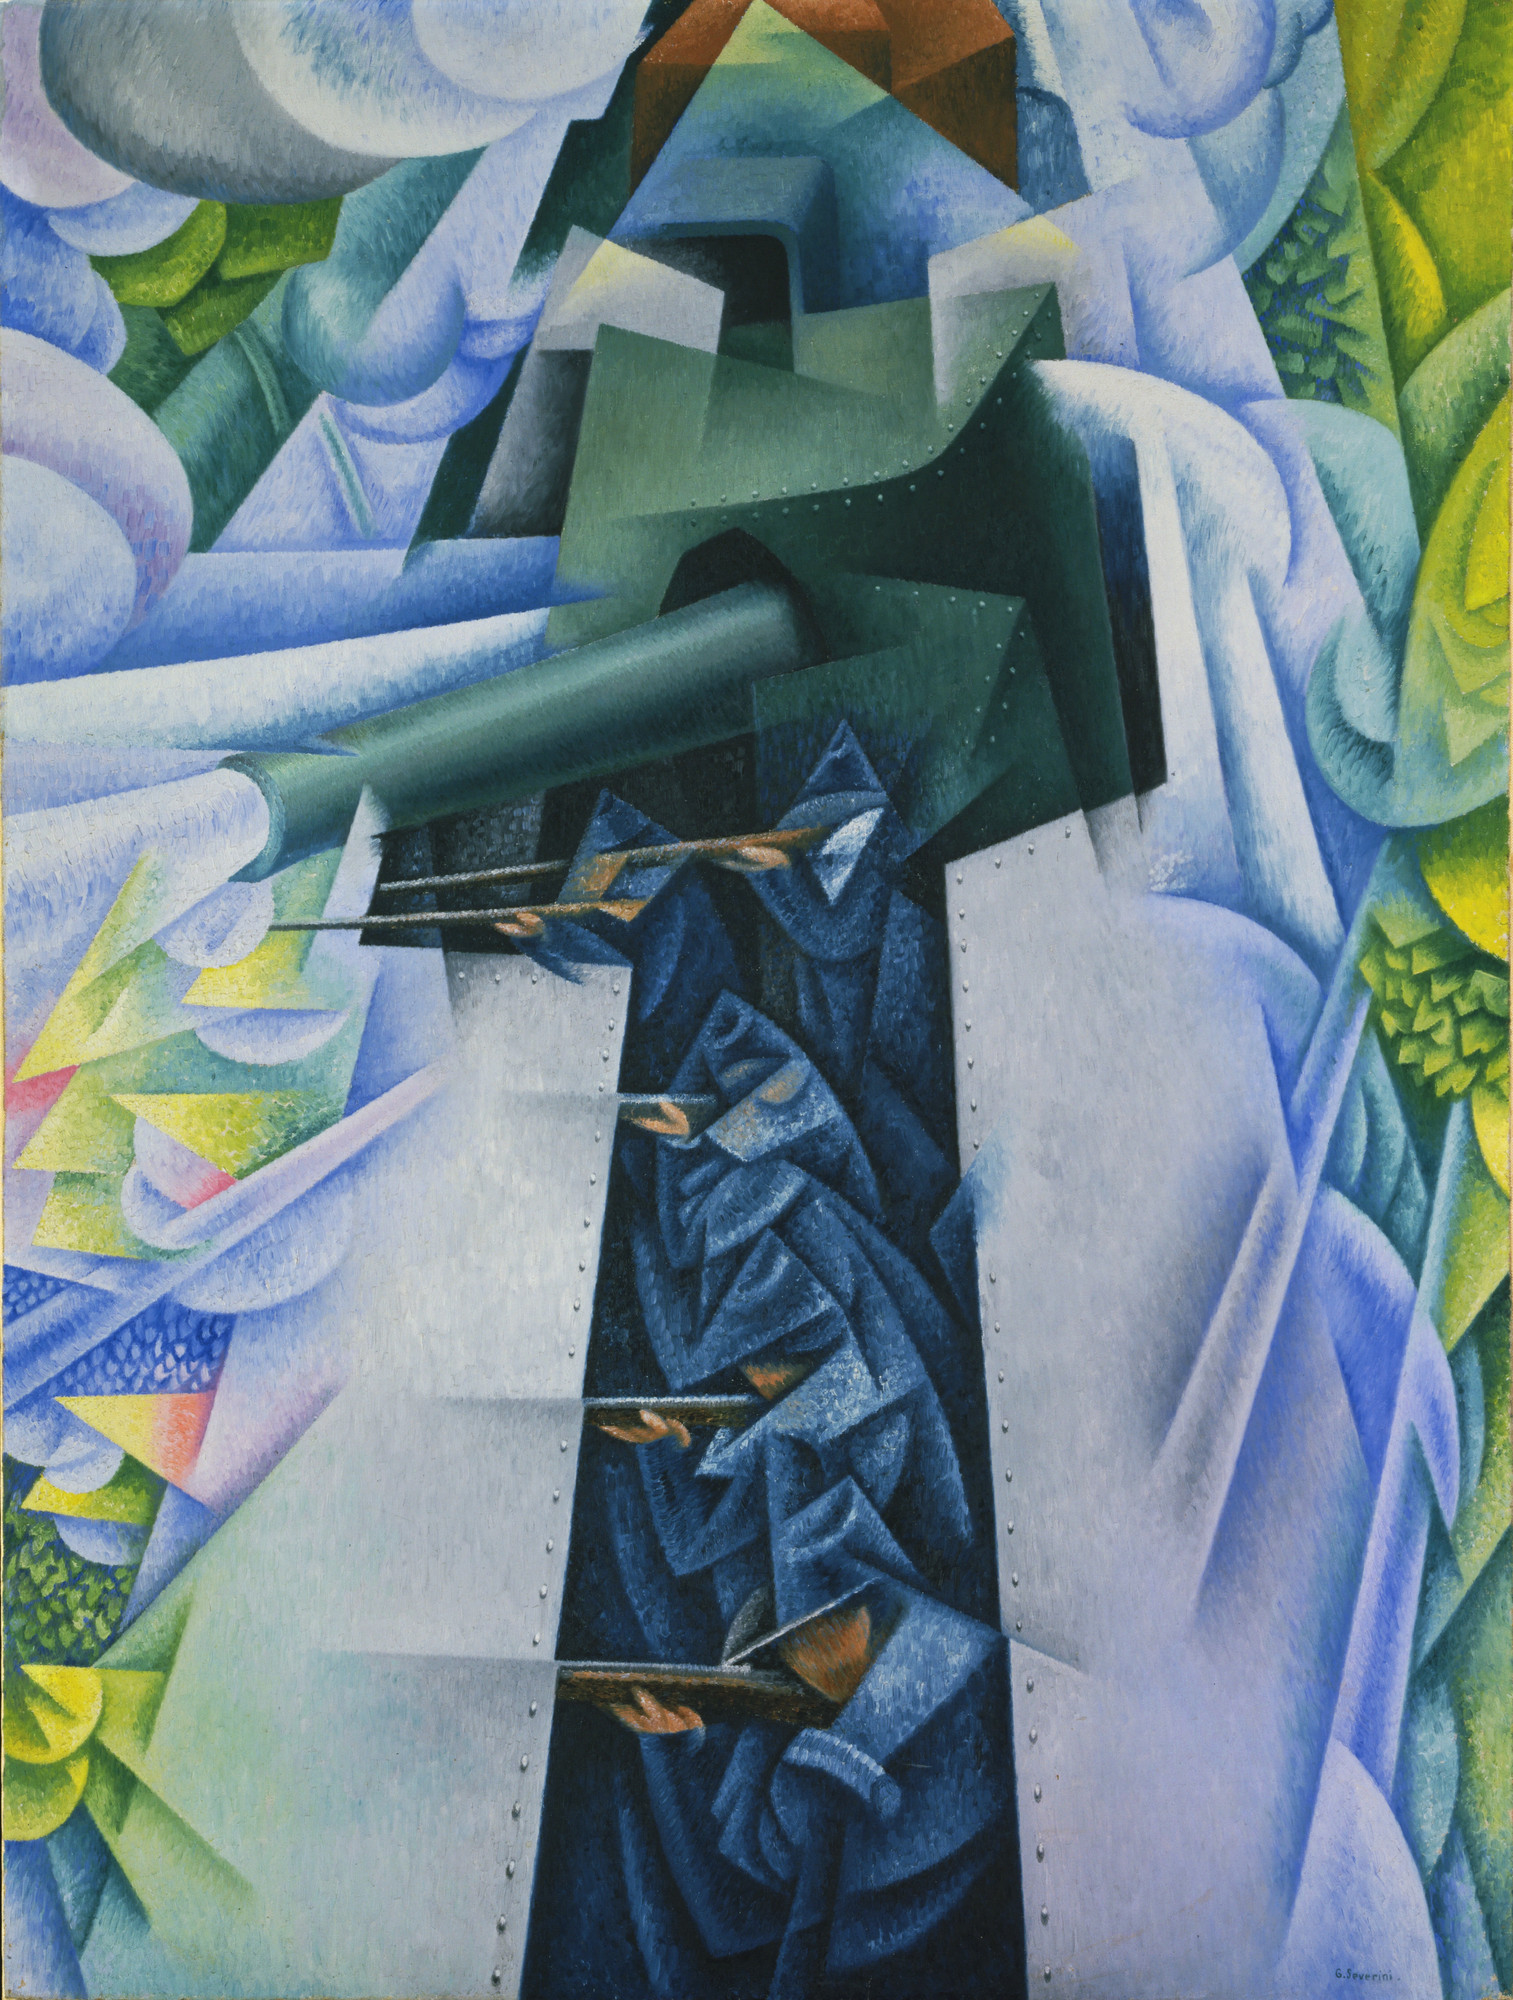 Gino Severini (Italian, 1883–1966). Armored Train in Action. 1915. Oil on canvas, 45 5⁄8 × 34 7/8″ (115.8 × 88.5 cm). Gift of Richard S. Zeisler. © 2017 Gino Severini/Artists Rights Society (ARS), New York/ADAGP, Paris